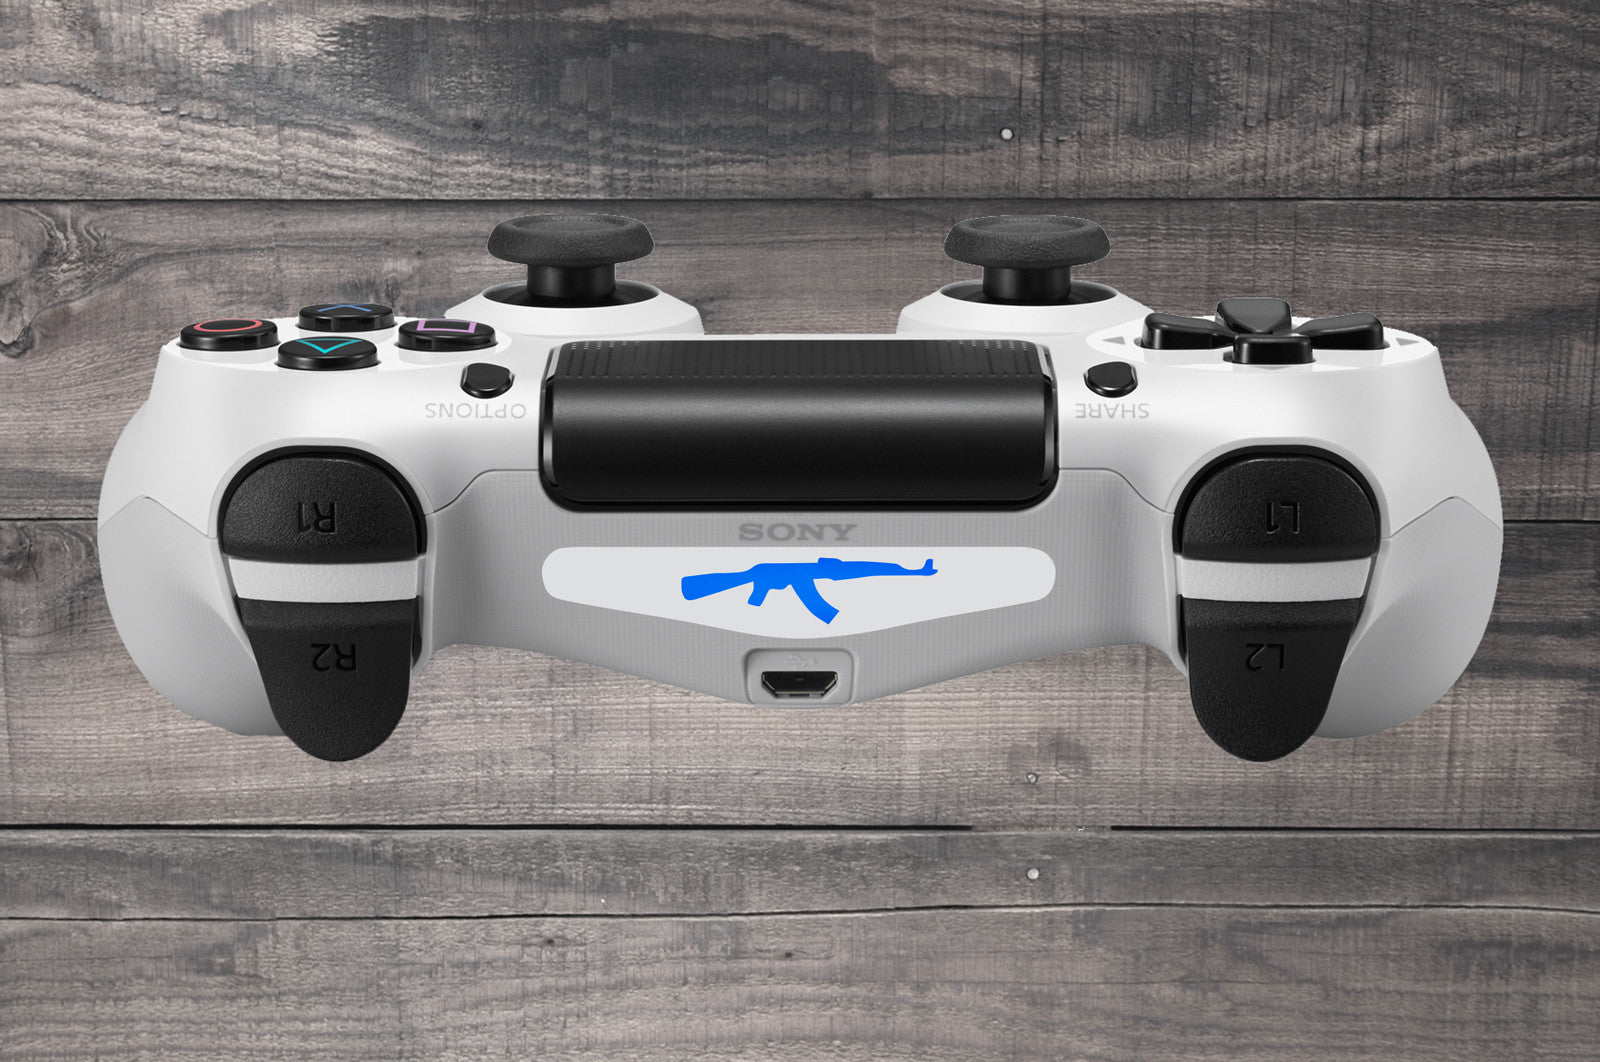 Retro batman playstation 4 ps4 dual shock controller light bar ak47 ps4 dual shock controller light bar decal white aloadofball Choice Image